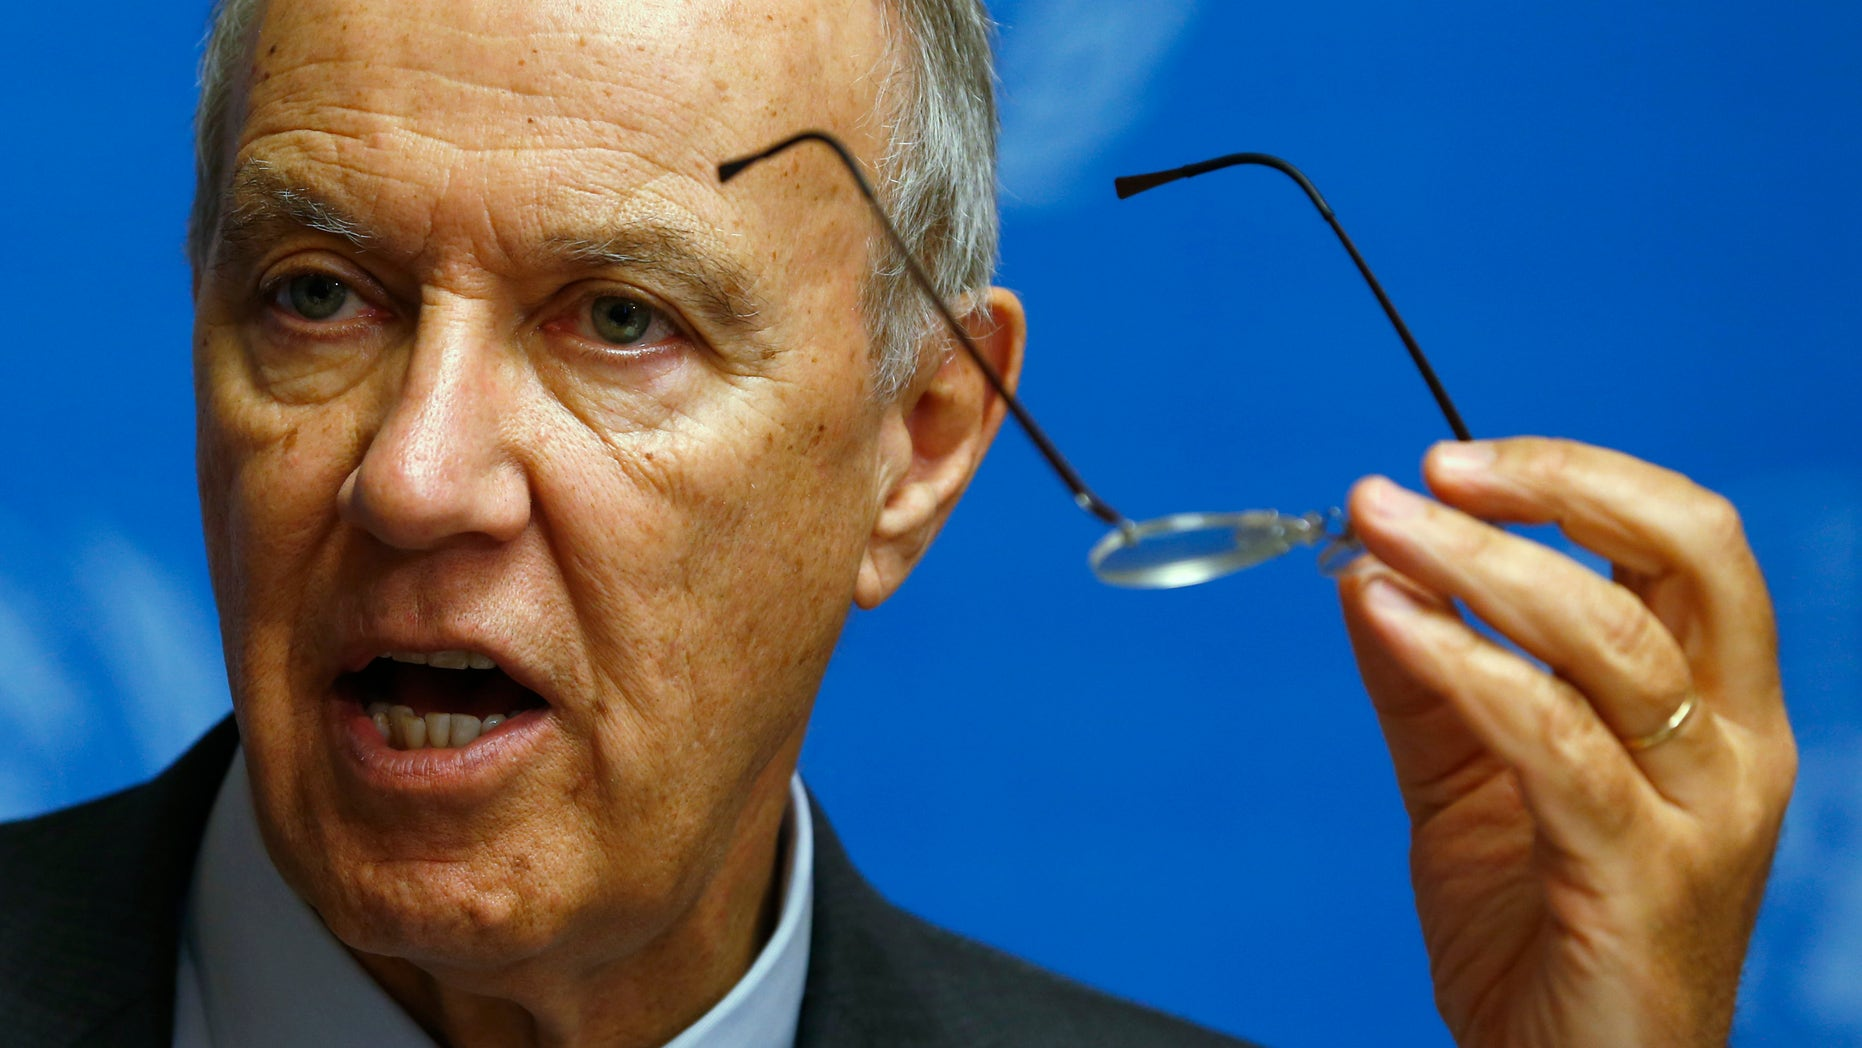 December 9, 2013: Director-General of World Intellectual Property Organization (WIPO) Francis Gurry addresses a news conference at the United Nations European headquarters in Geneva.